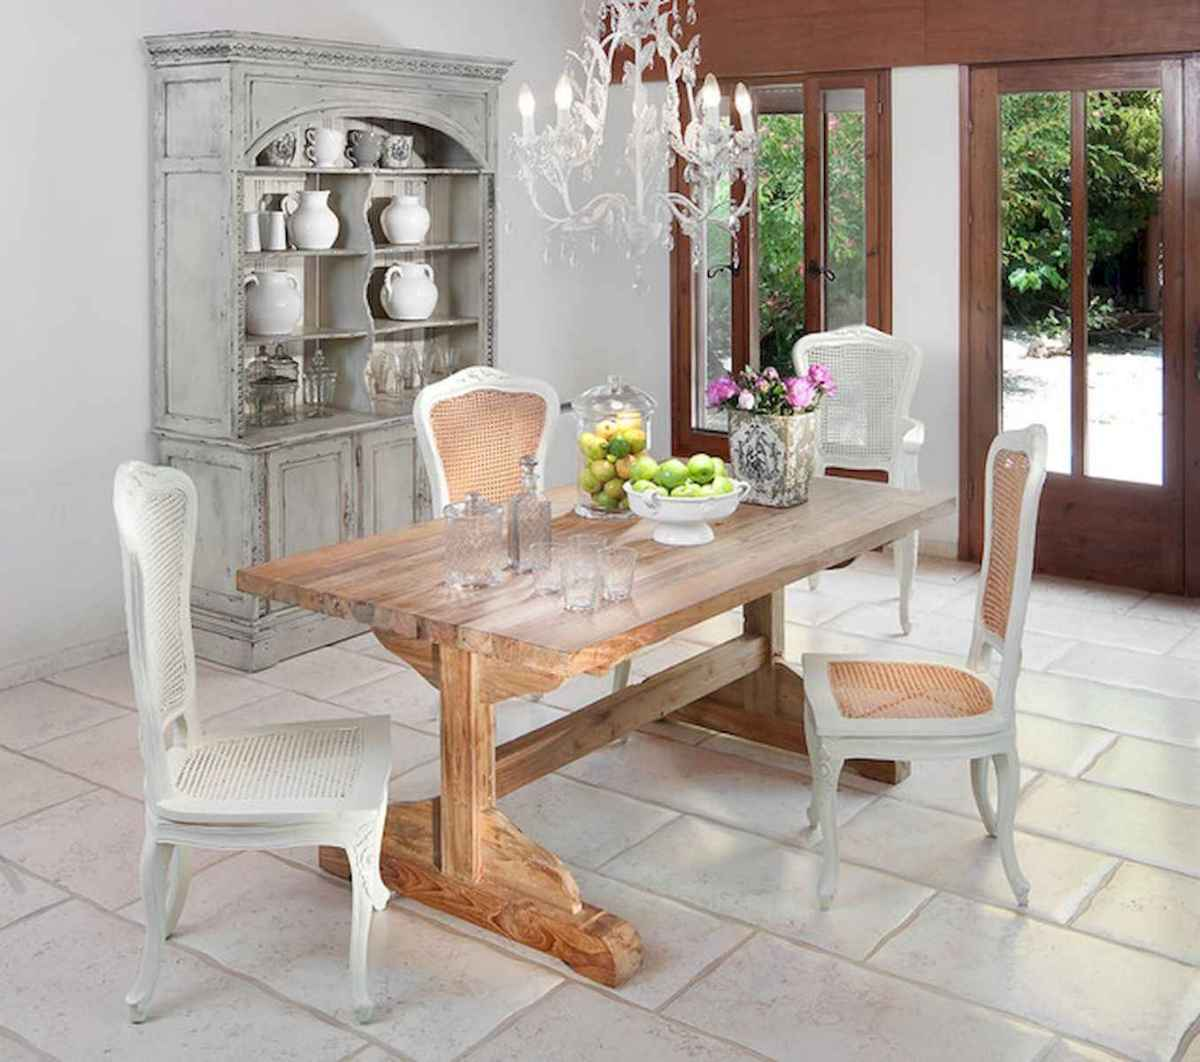 100 Awesome Vintage Dining Table Design Ideas Decorations And Remodel (88)